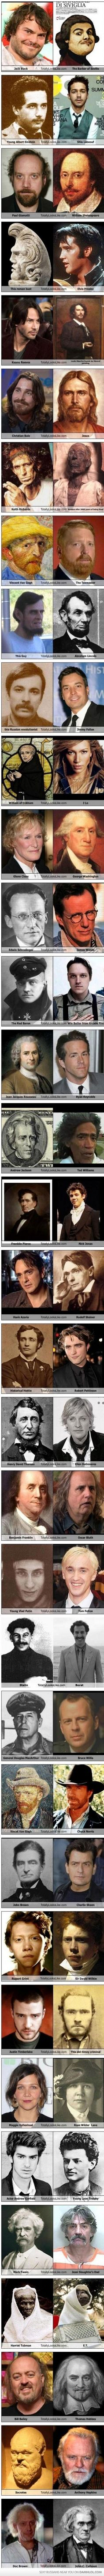 OMG some of these are so similar it's actually scary and now I'm thinking reincarnation is actually happens.